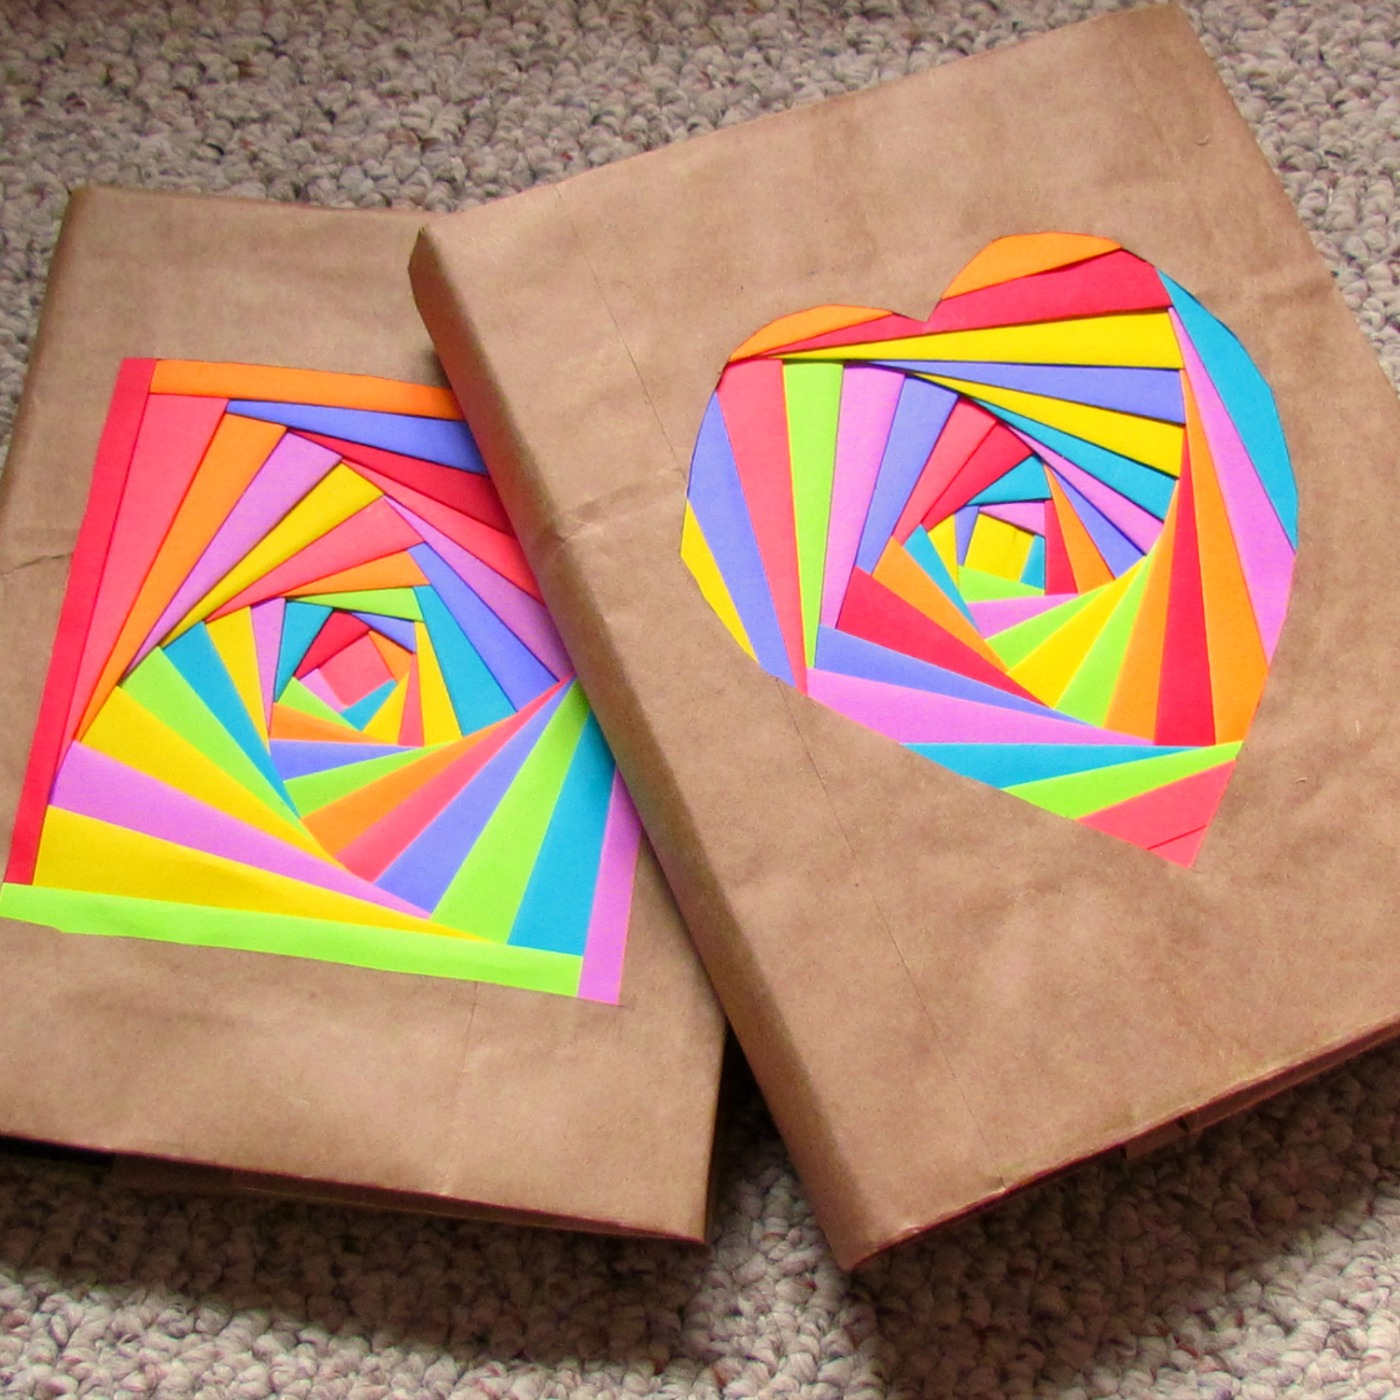 Book Cover Ideas Projects : Creating colorful book covers with astrobrights papers